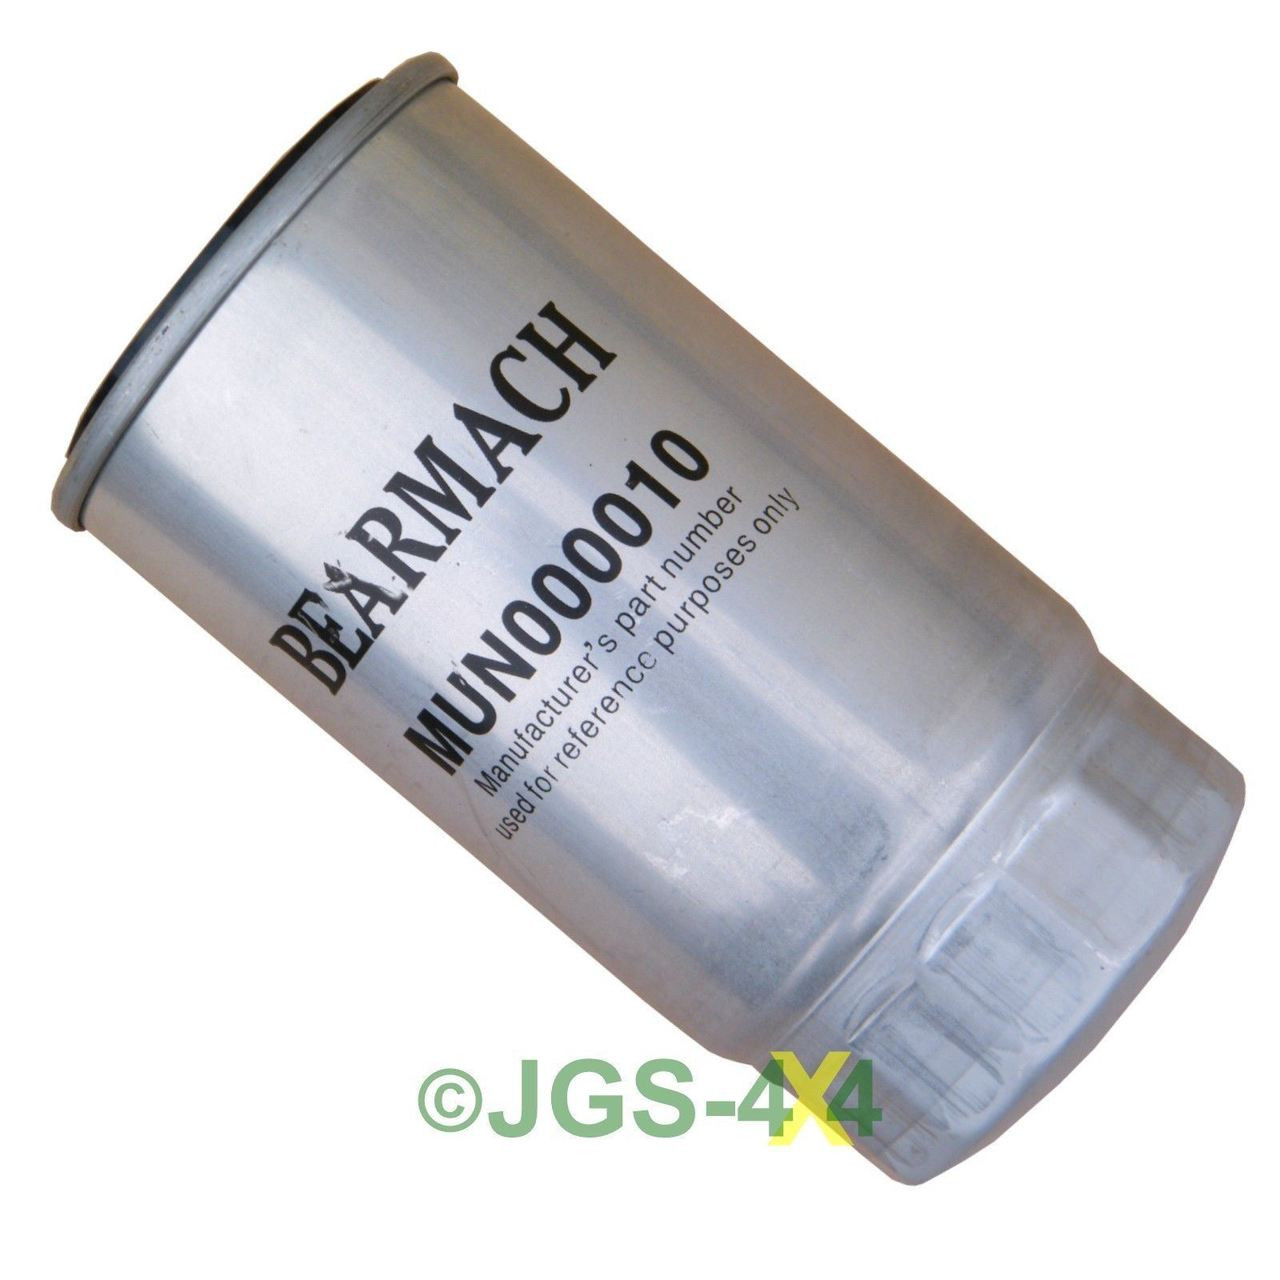 jgs4x4 land rover freelander 1 diesel fuel filter 2 0 td4 bmw engine mun000010 [ 1280 x 1280 Pixel ]